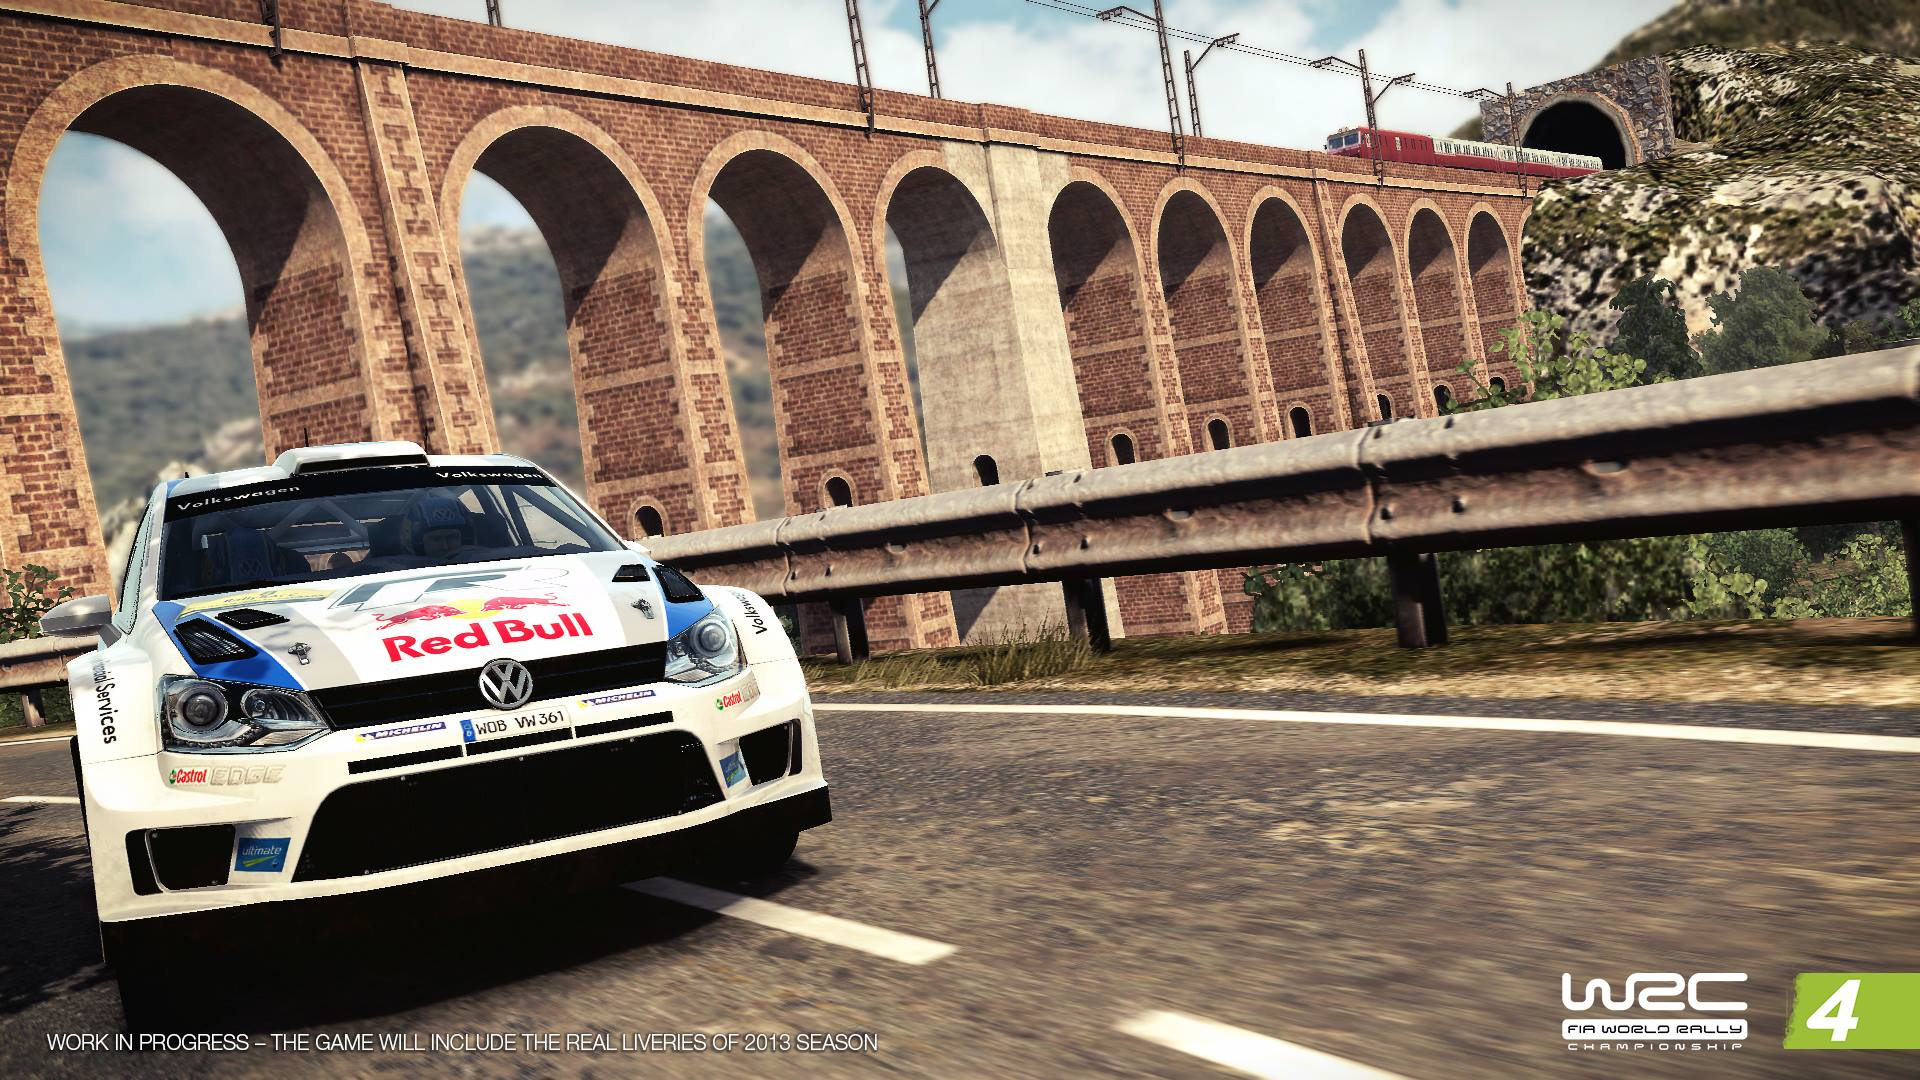 WRC 4 gameplay trailer takes us through Germany's winding roads